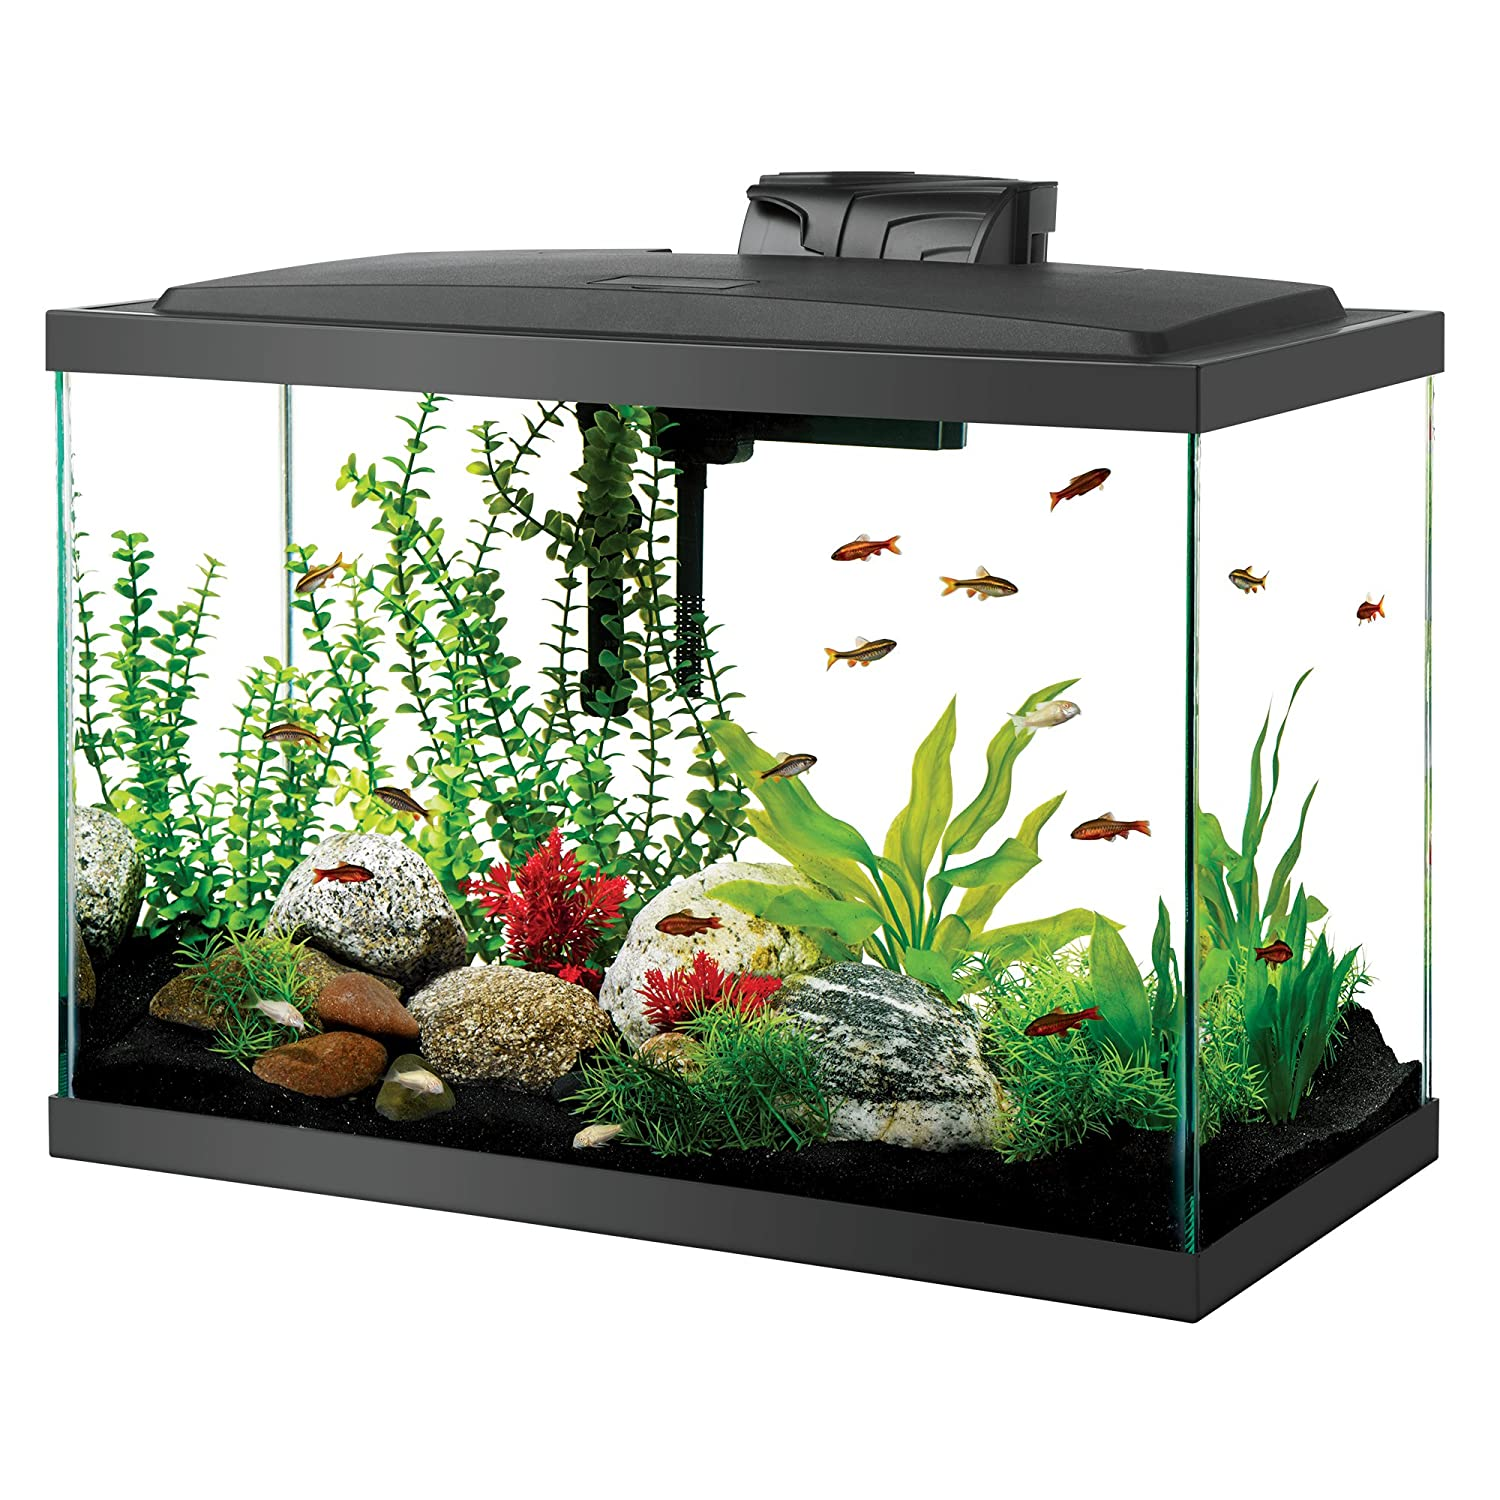 Top 7 Best 20 Gallon Aquariums in 2018 Market - List ...